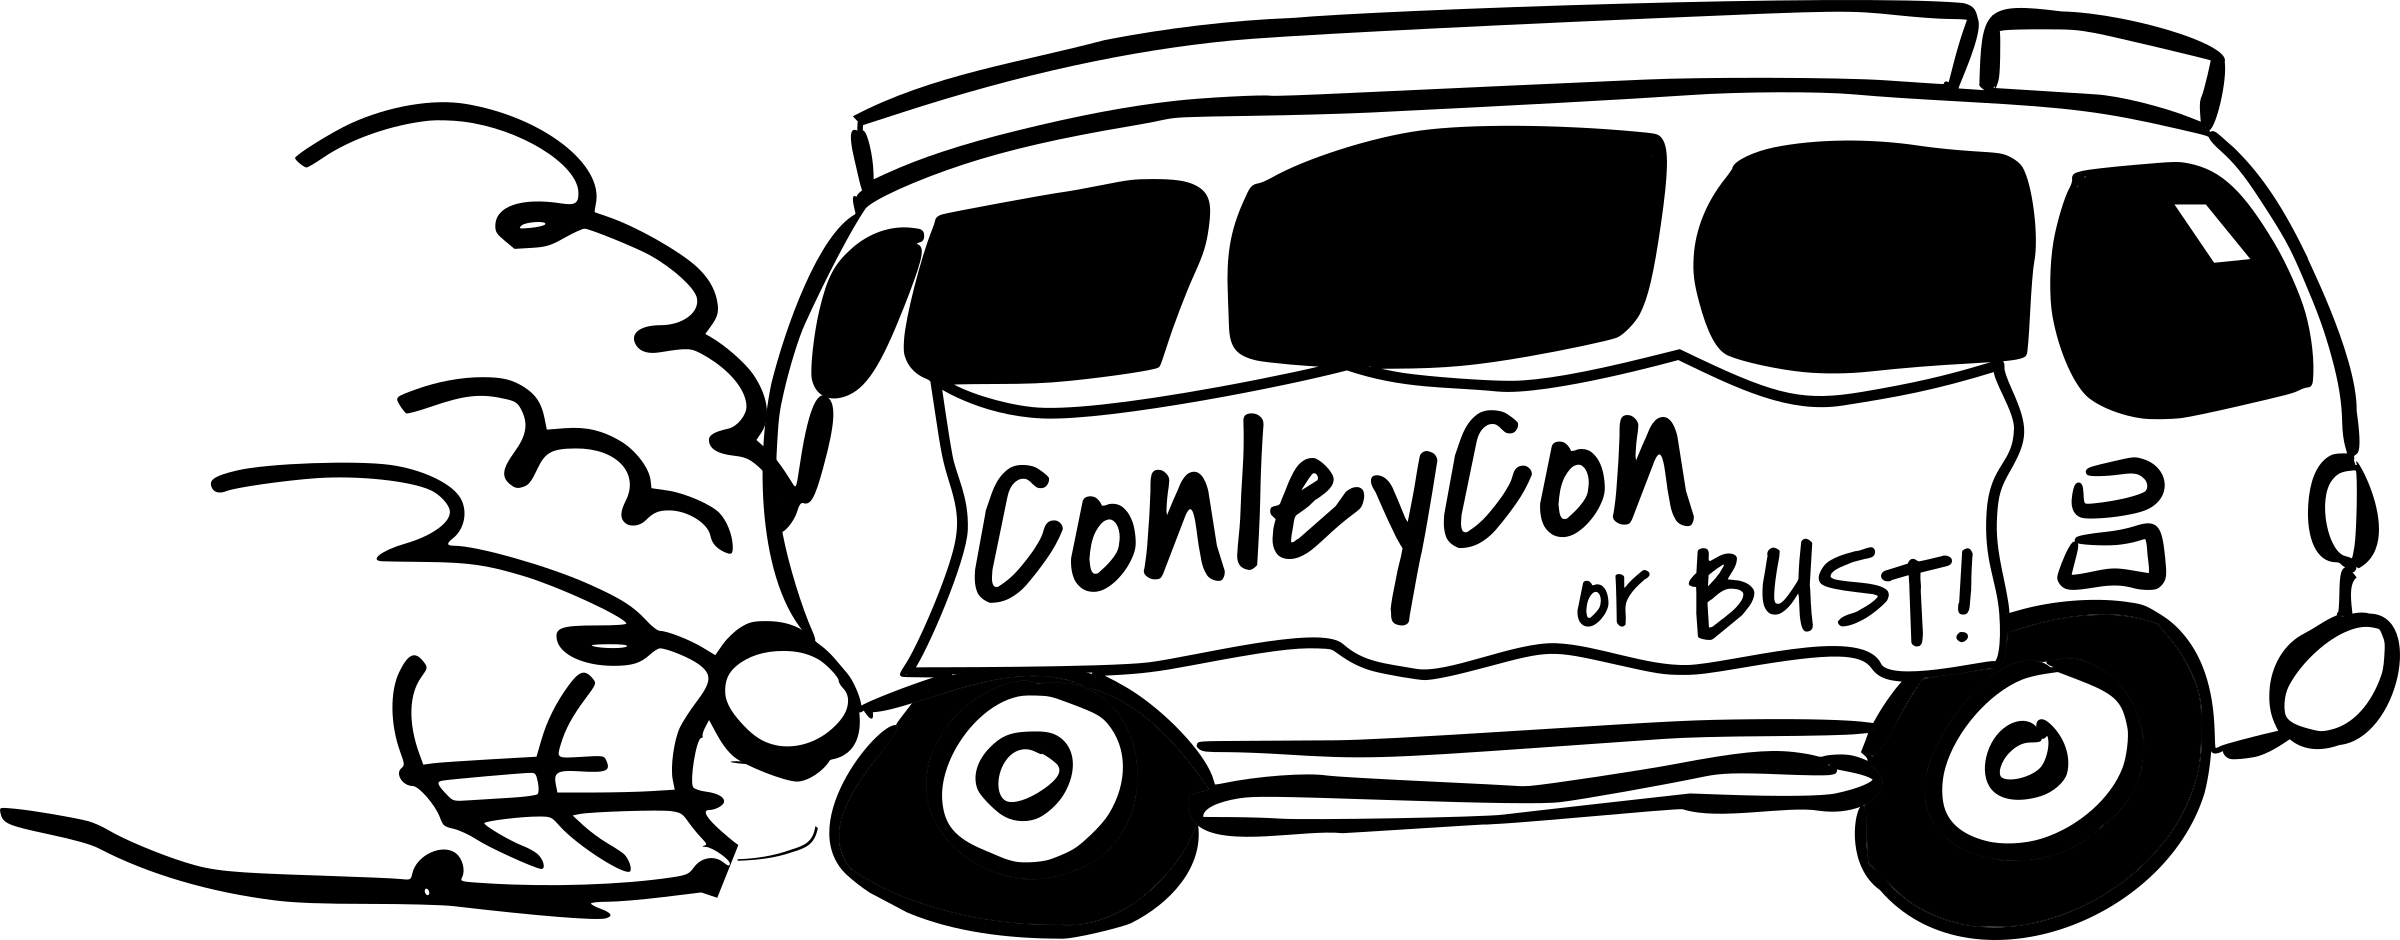 ConleyCon Van, black and white by dear_theophilus